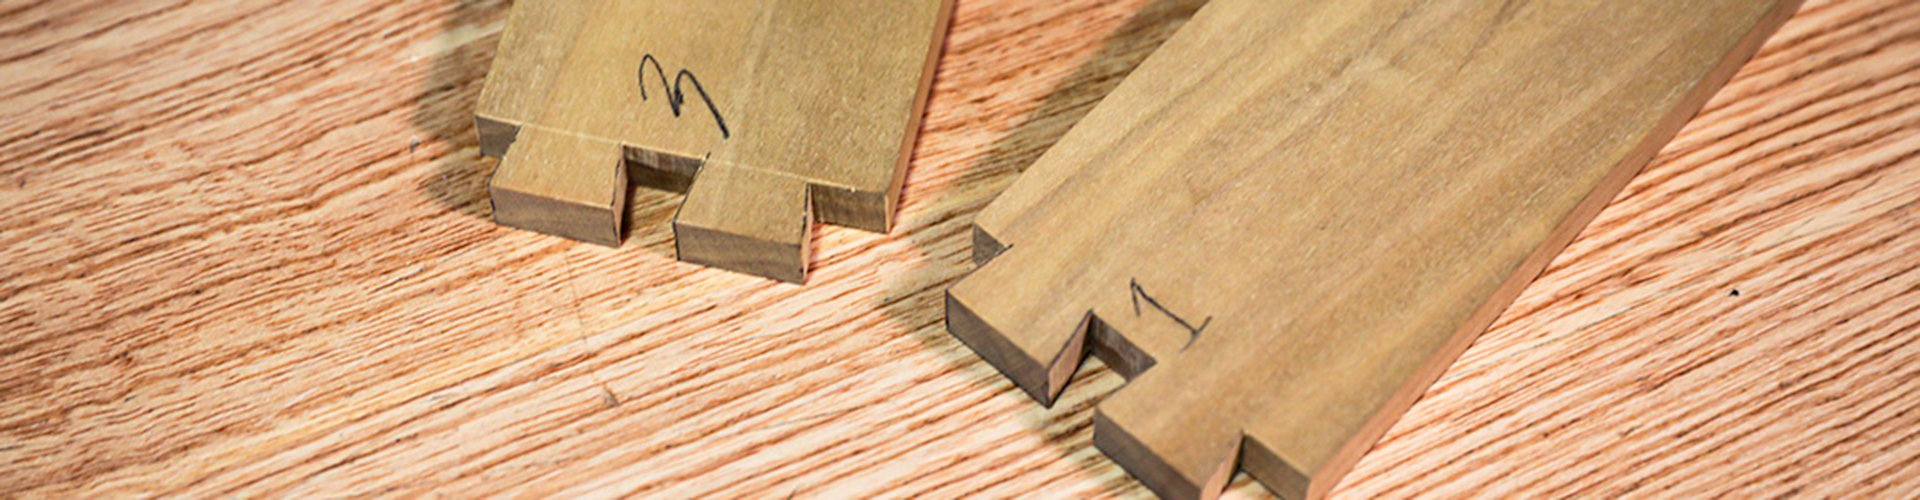 School Header - How to Cut the Dovetails